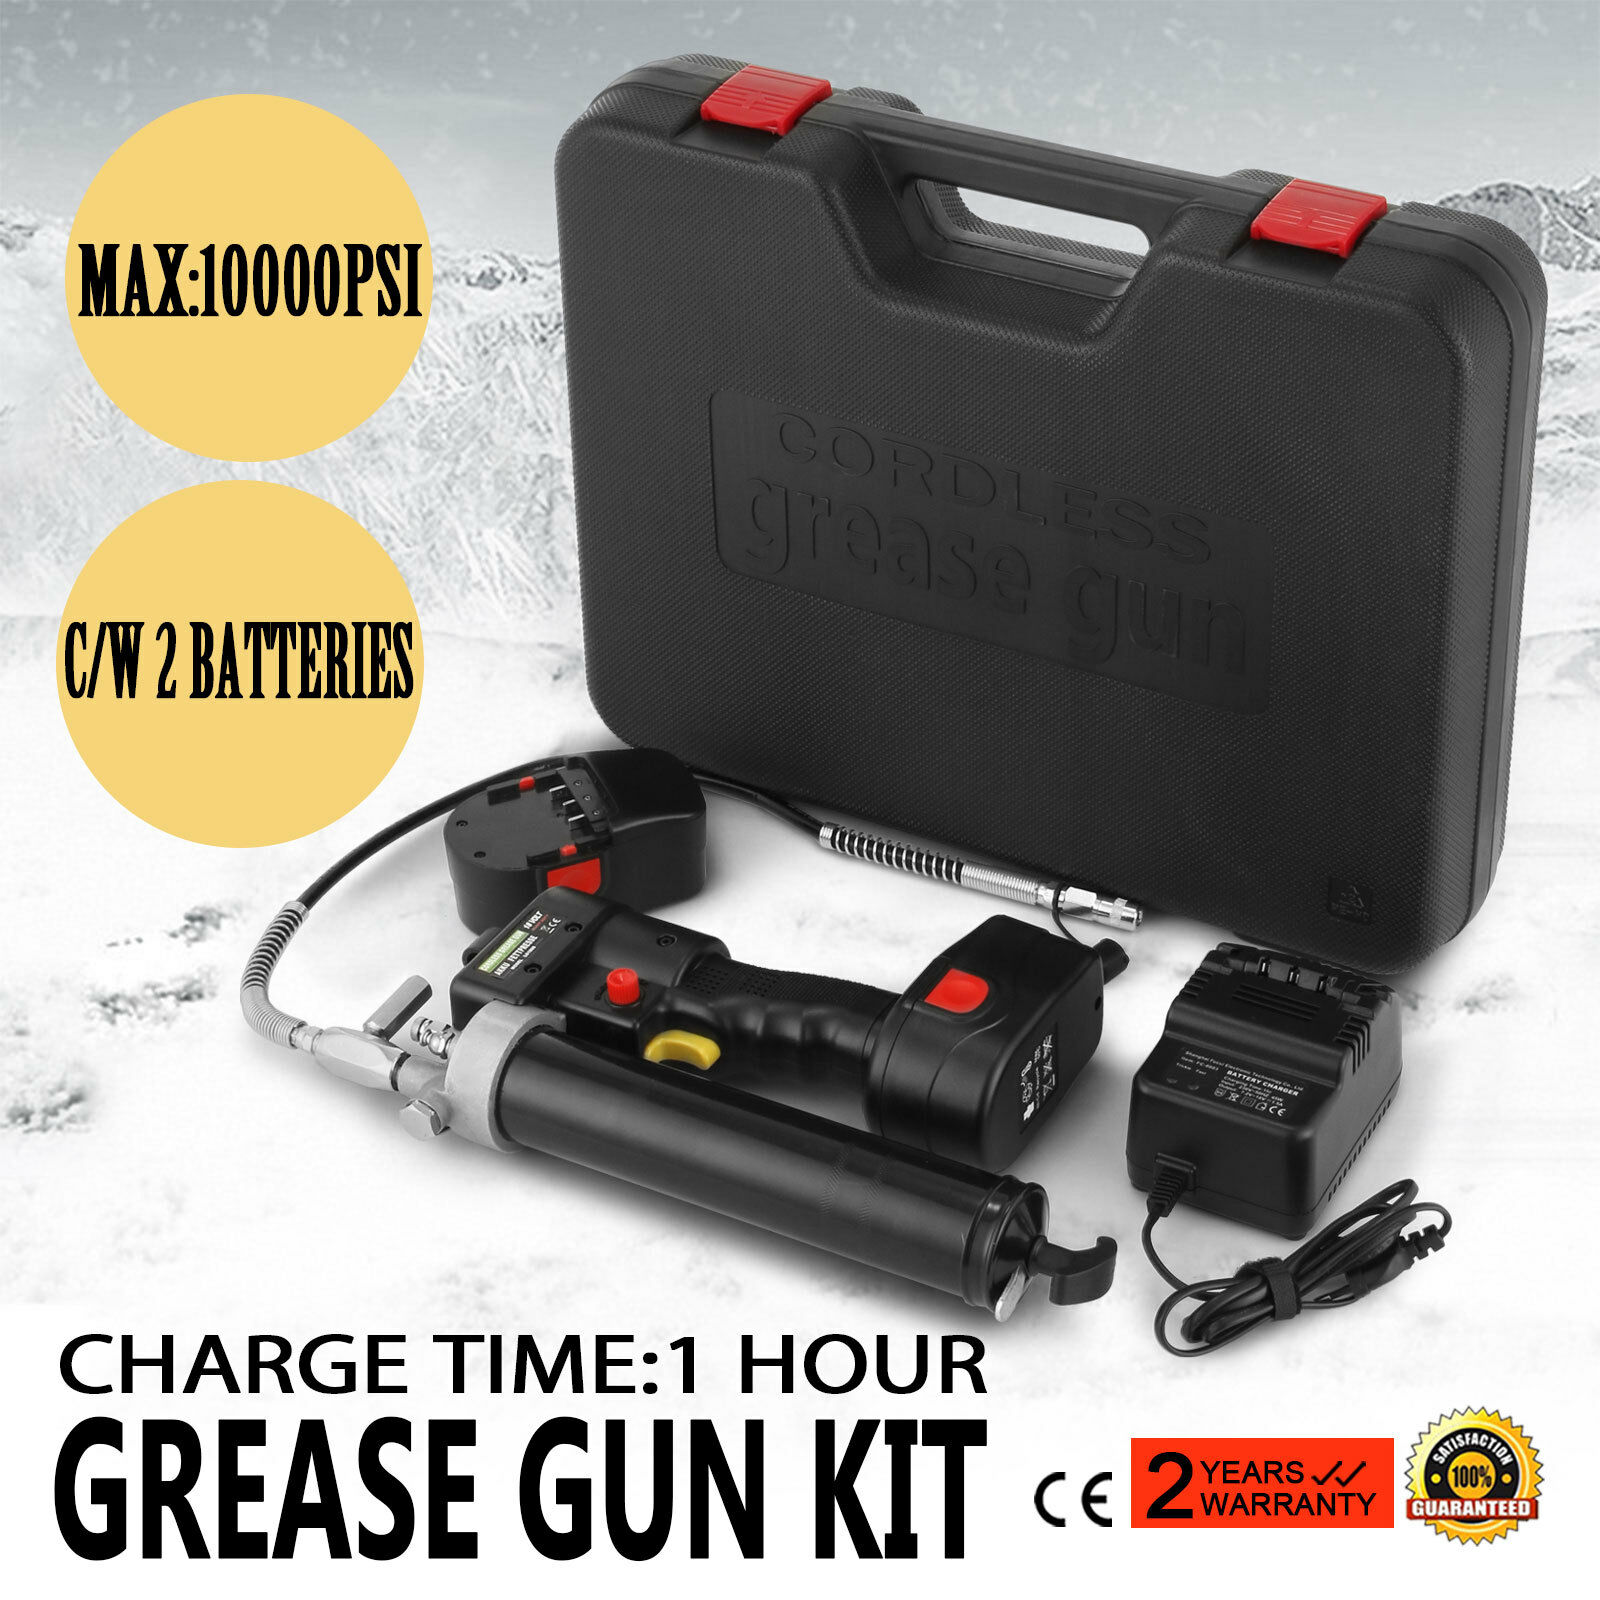 18v Volt Battery Electric Grease Gun Cordless Rechargeable Industrial Quality Garment Steamer Parts Aliexpress